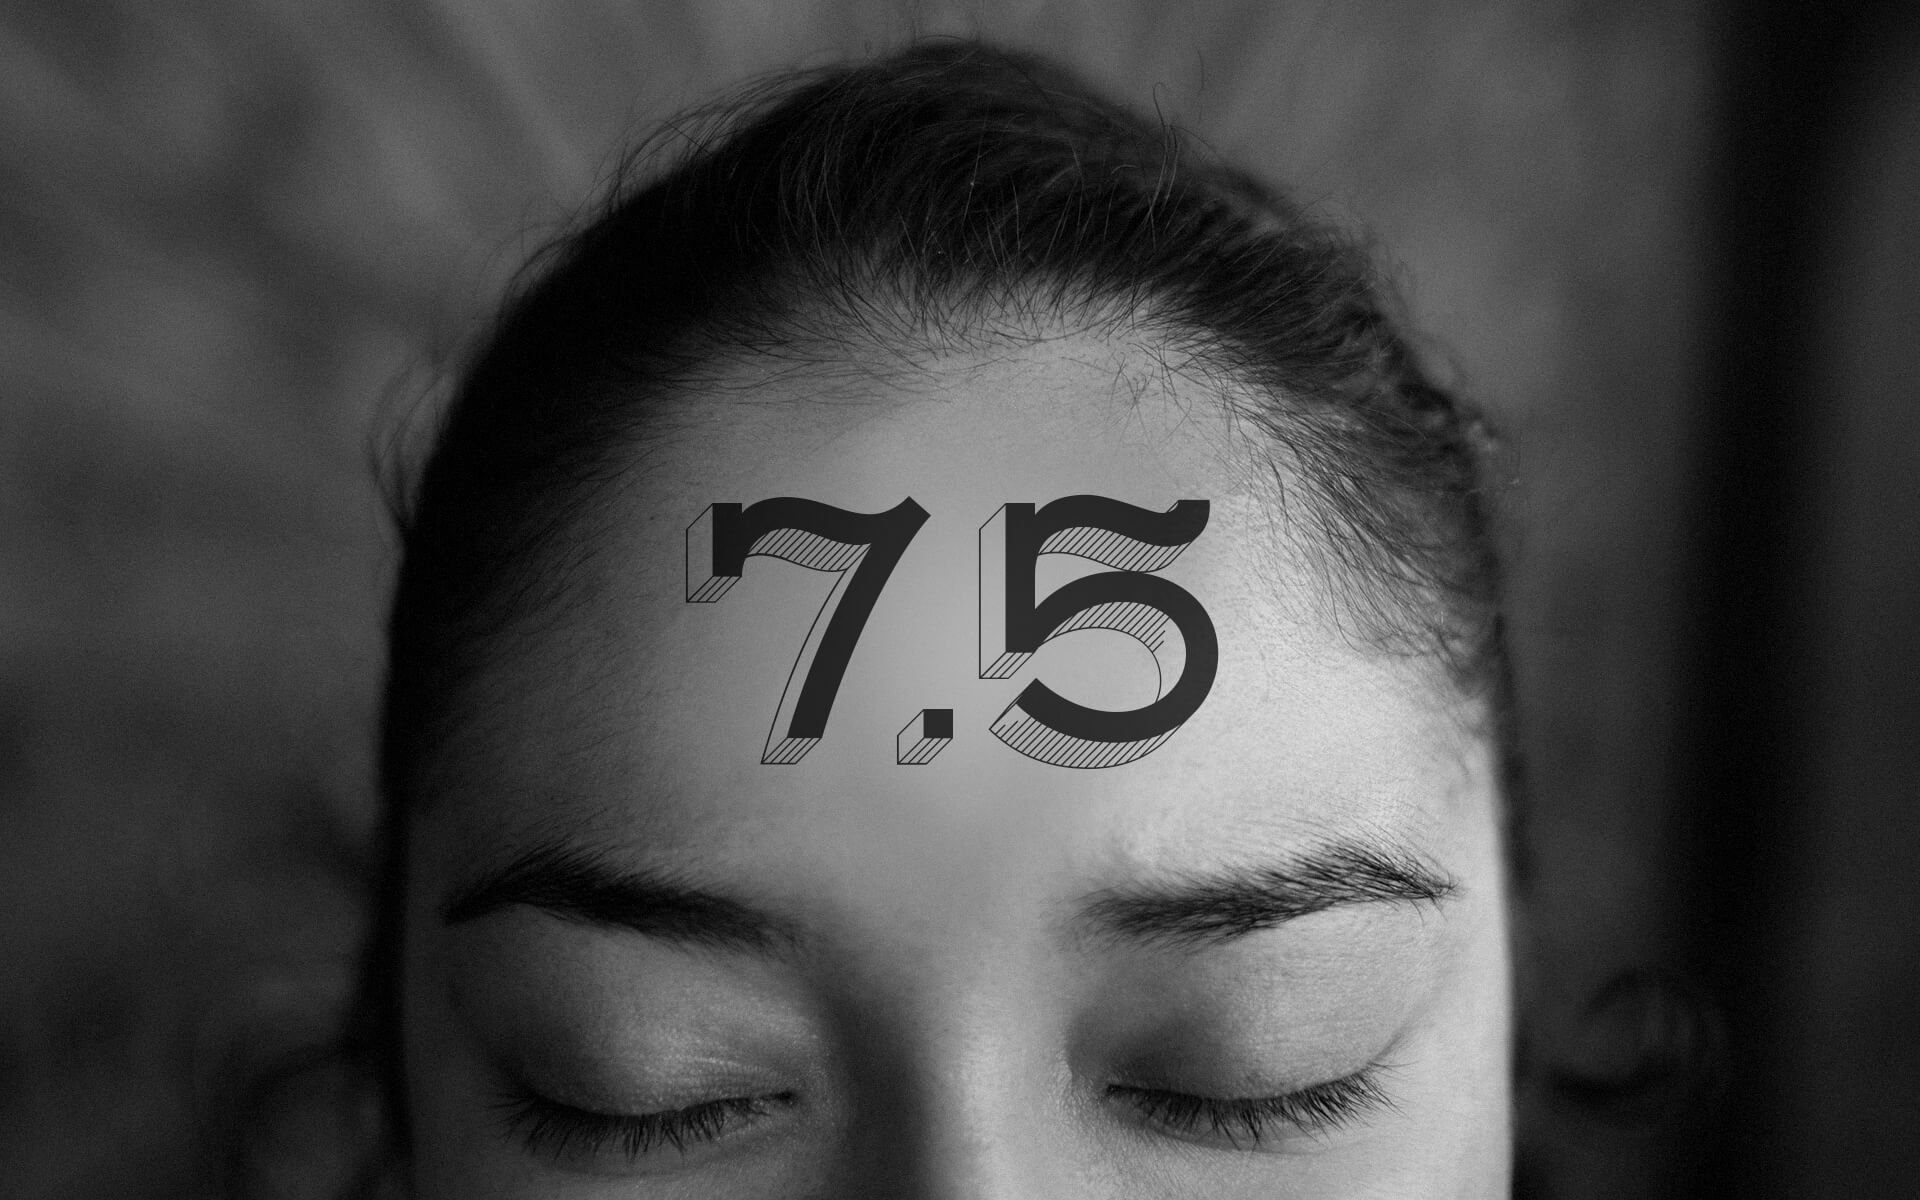 The number 7.5 is displayed on persons forehead